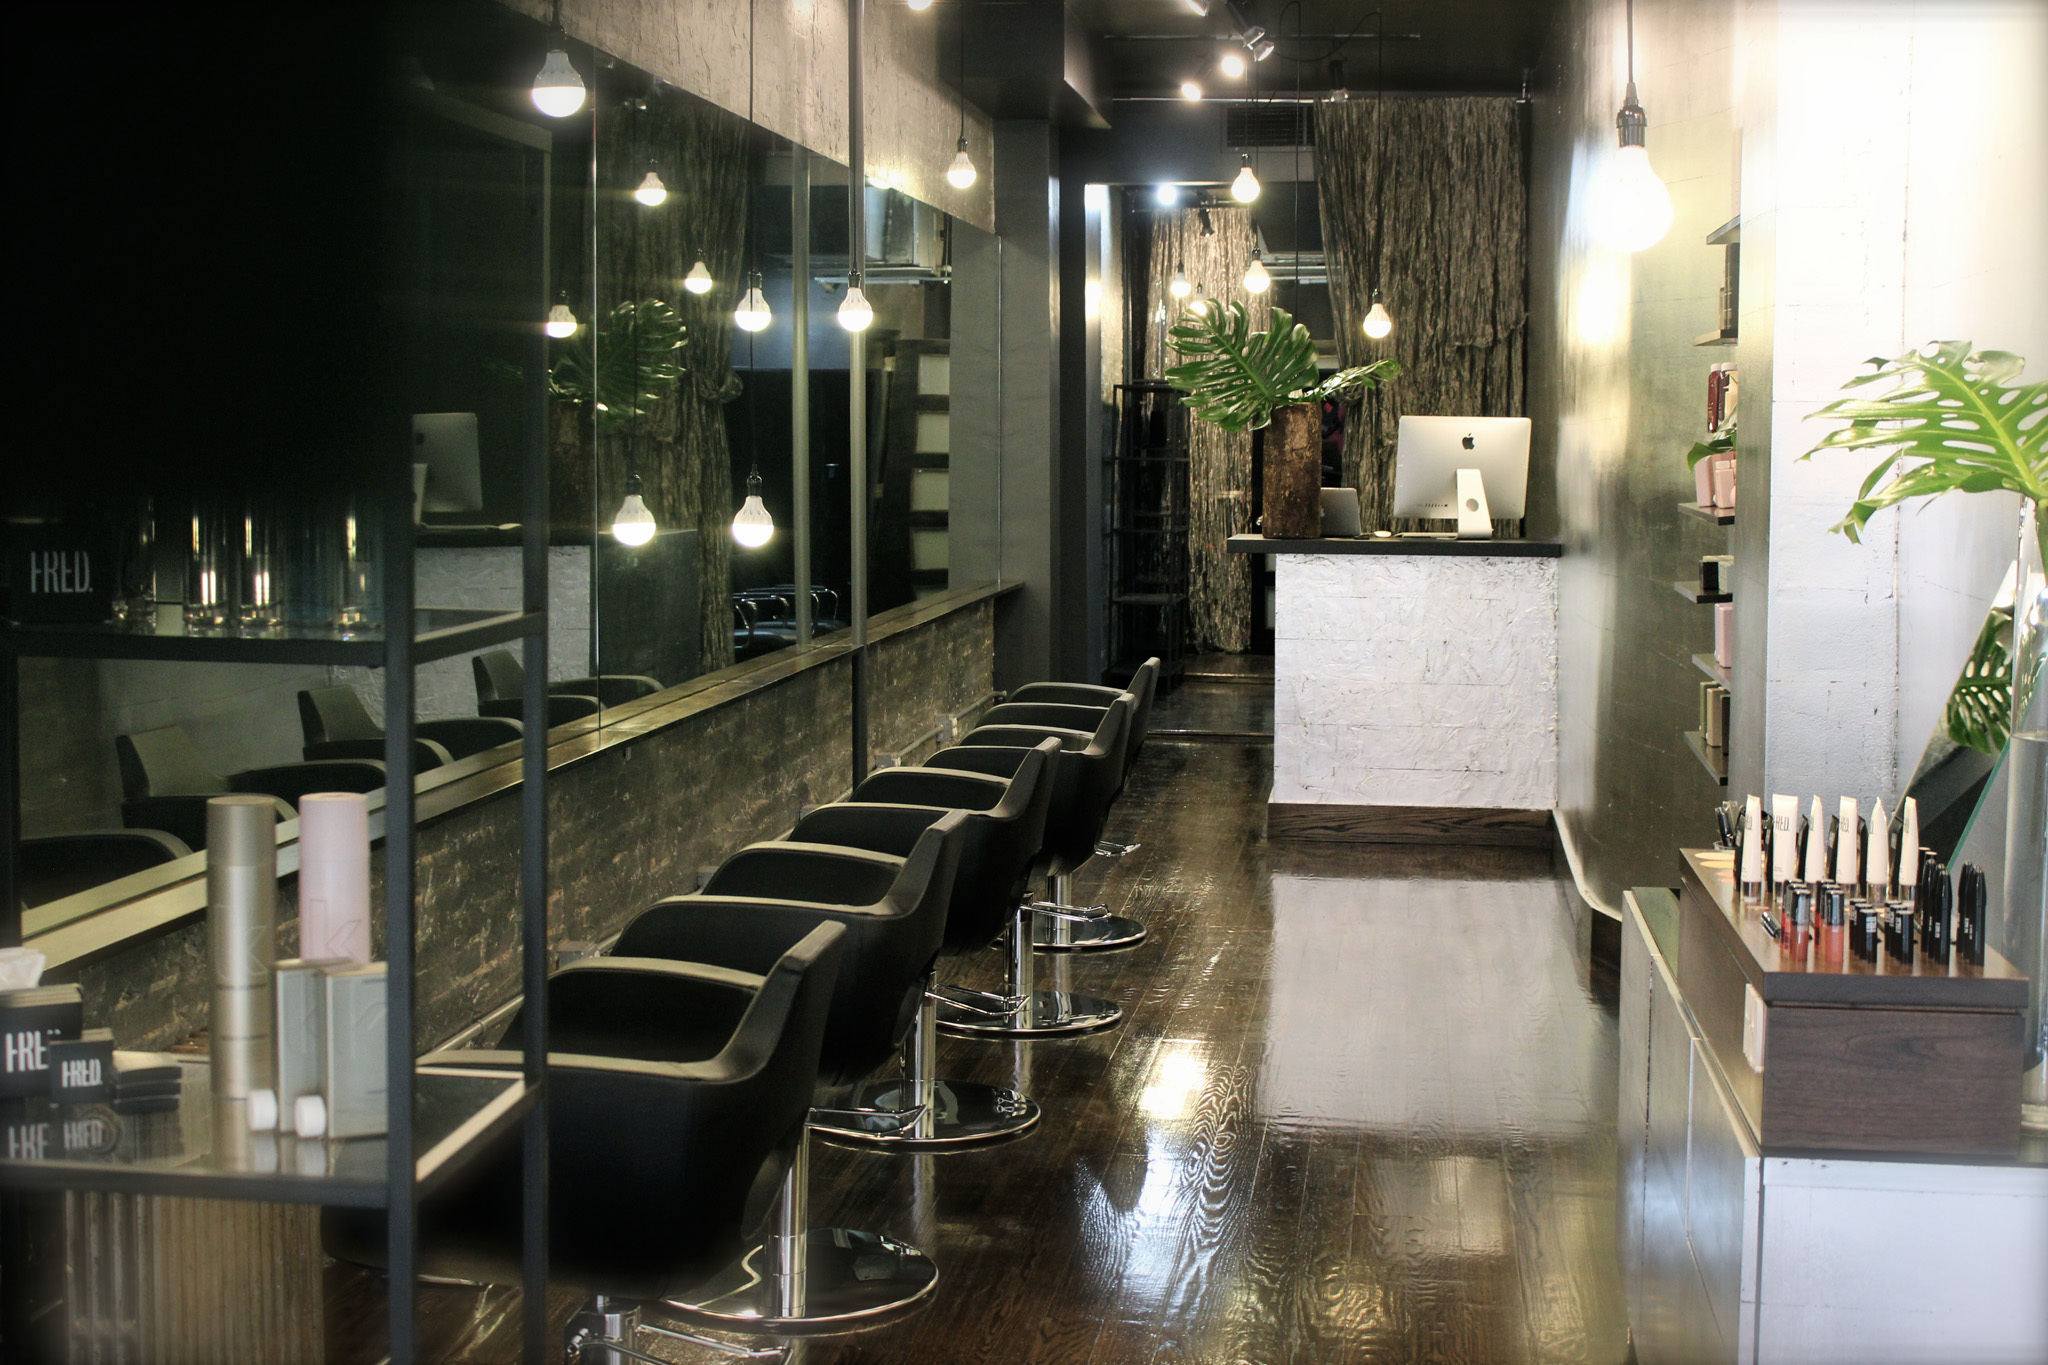 FRED salon